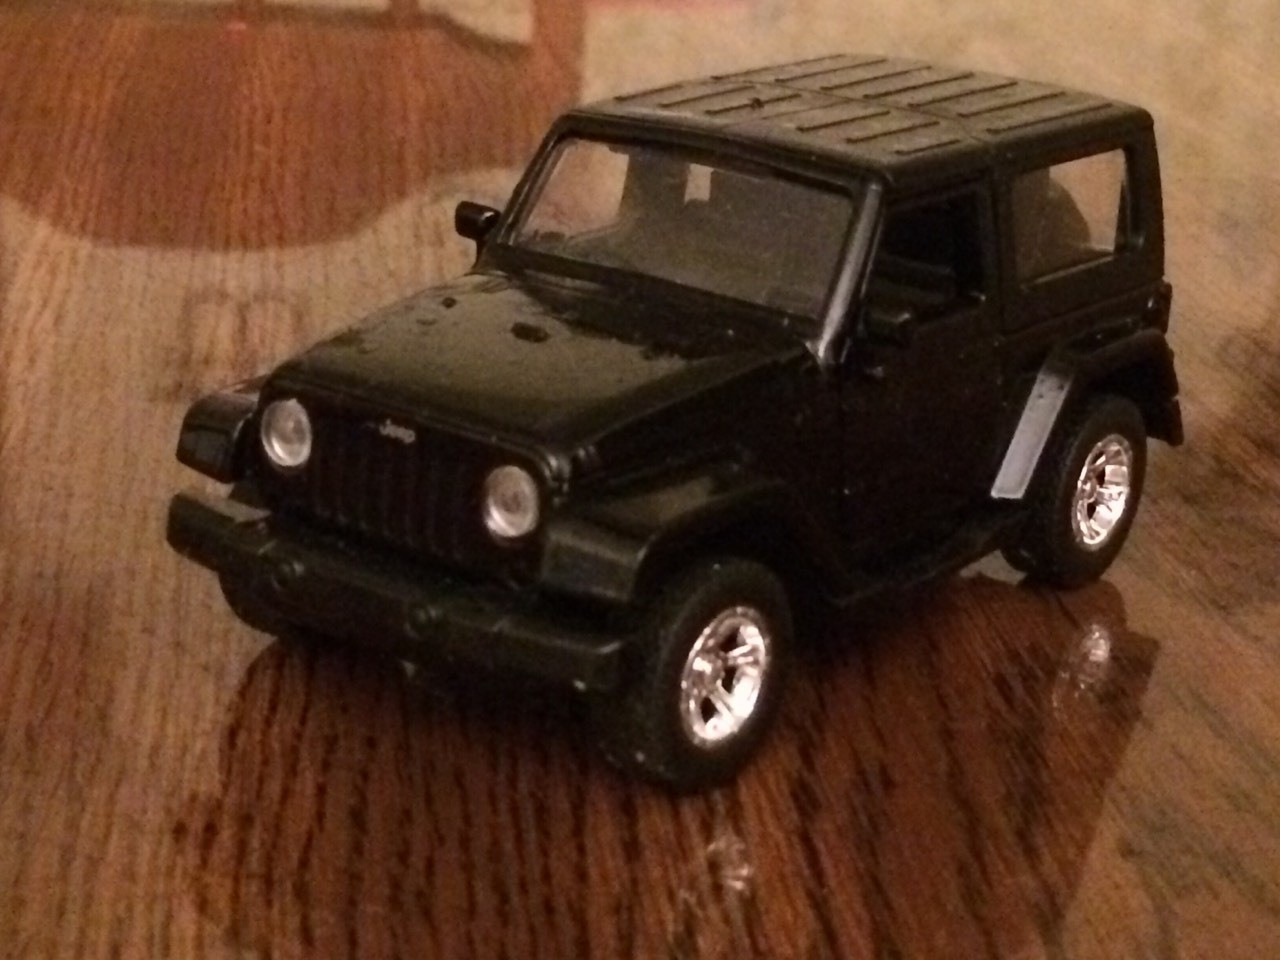 Some companies or most companies have started making toy jeeps anyways A lot of kids that are into like the army or cars should like jeeps